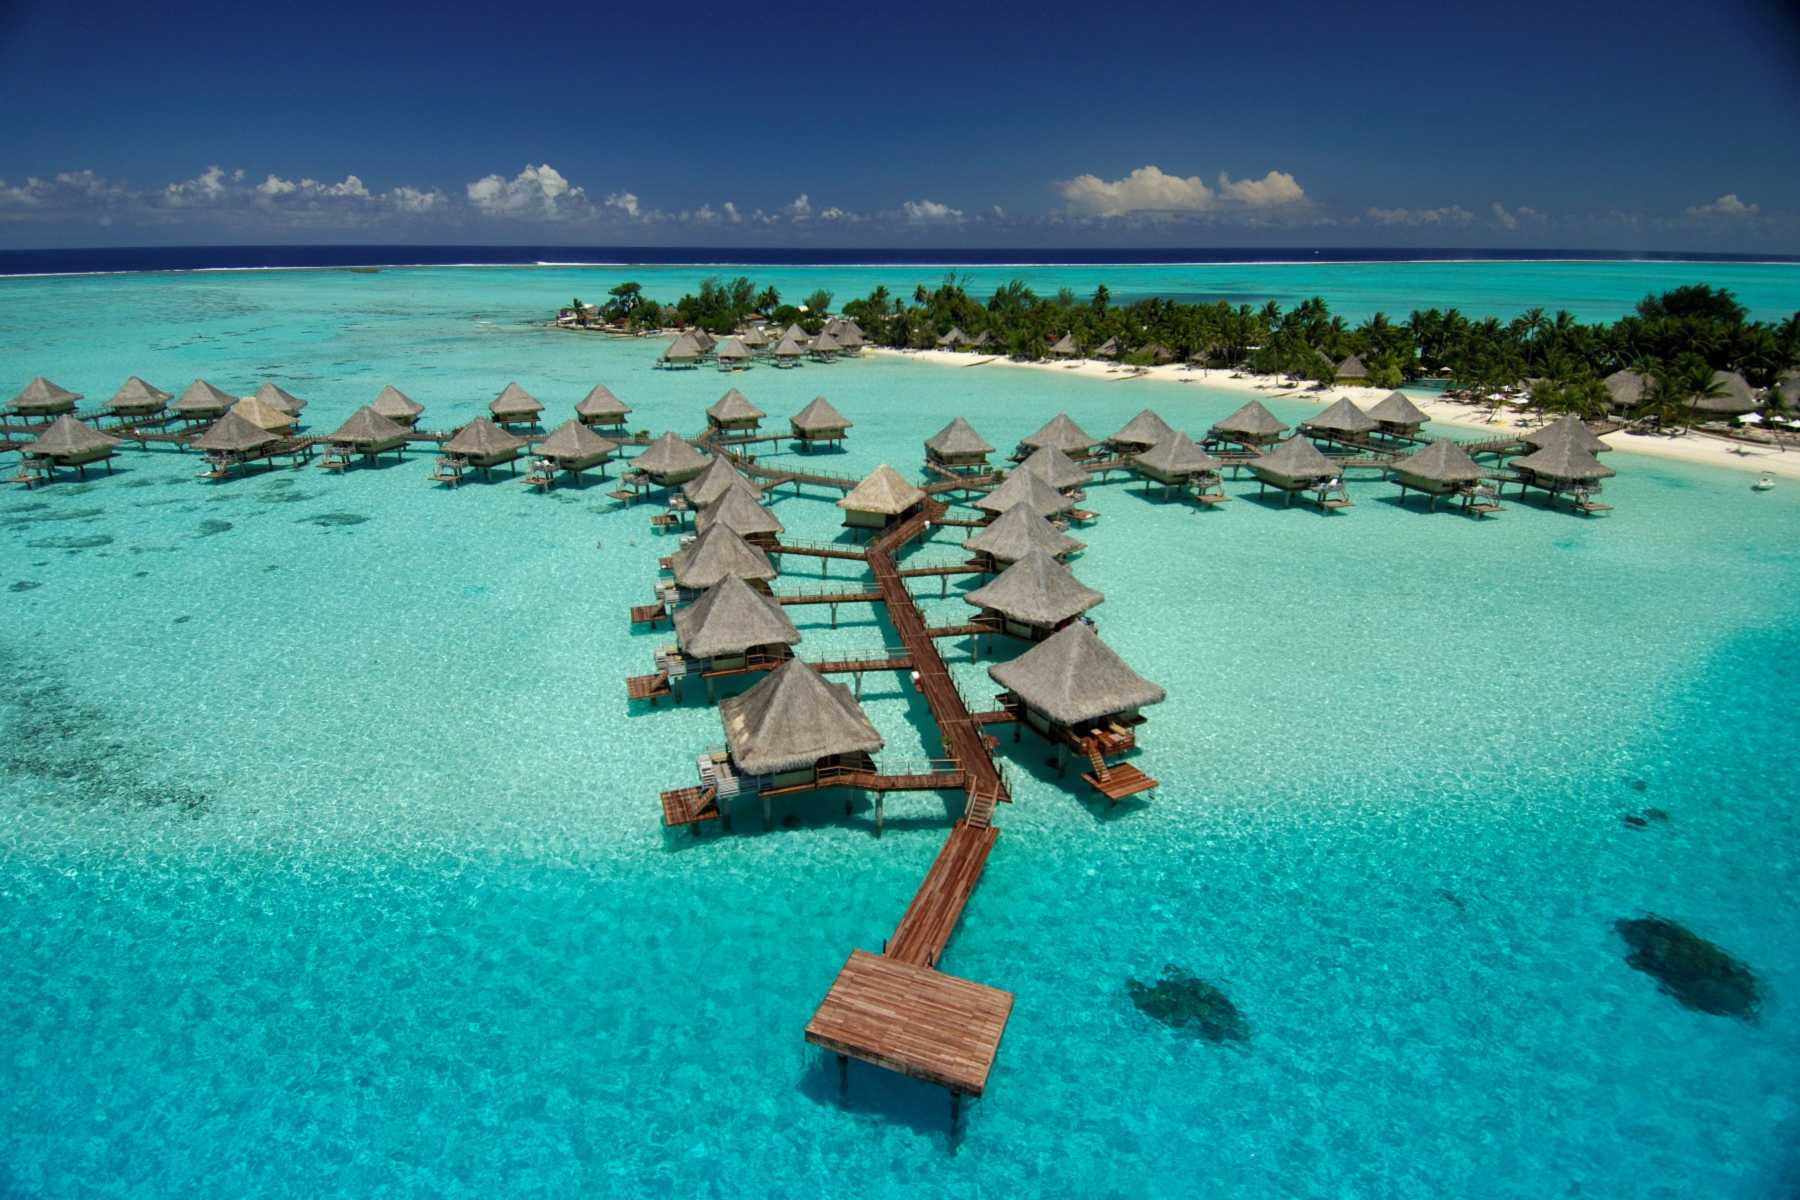 https://tahititourisme.ca/wp-content/uploads/2018/04/BOB-InterContinental-Le-Moana-Aerial-View01.gallery_image.1.jpg